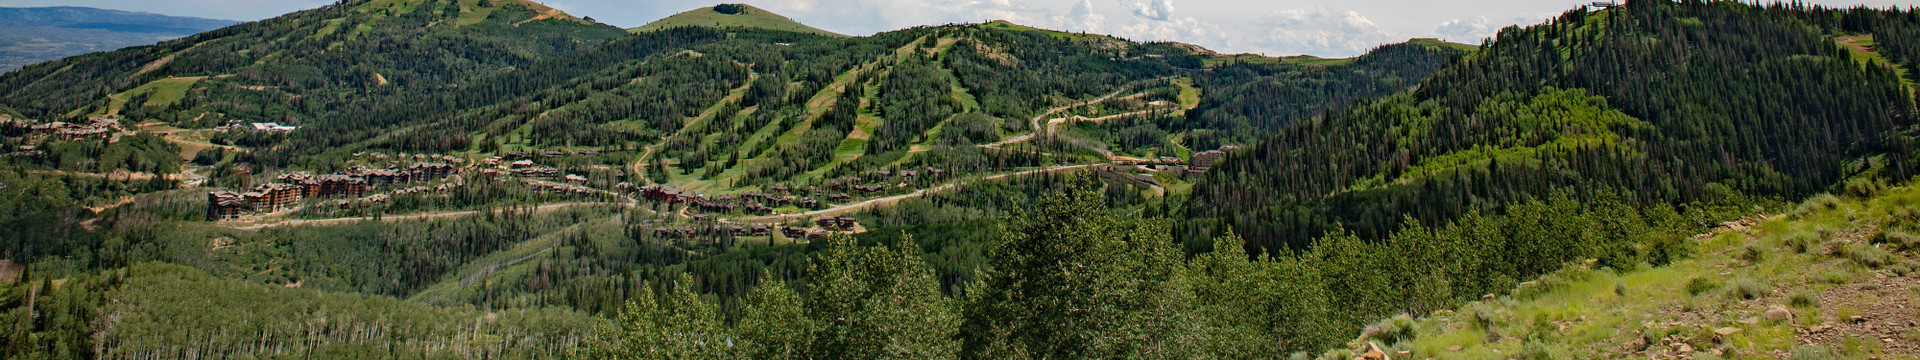 Park City Resort Map and Overview for our Utah Hotel and Ski Resort | Kids Hiking in Mountains